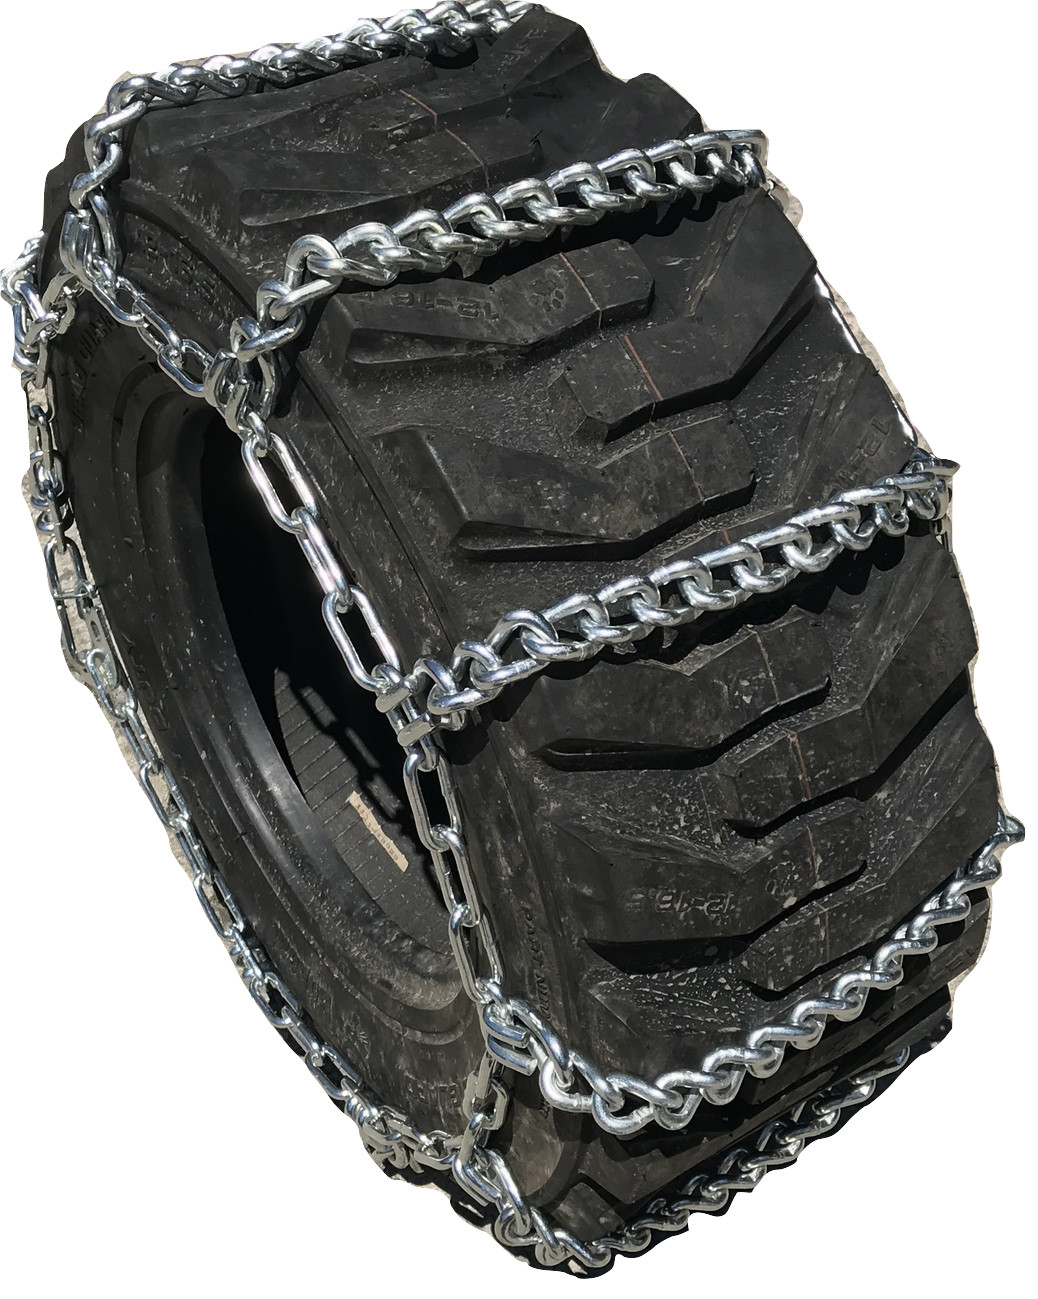 Industrial & Off-the-Road (OTR) 14.00 24 Loader Grader Tire Chains Set of 2 TireChain.com 14.00-24